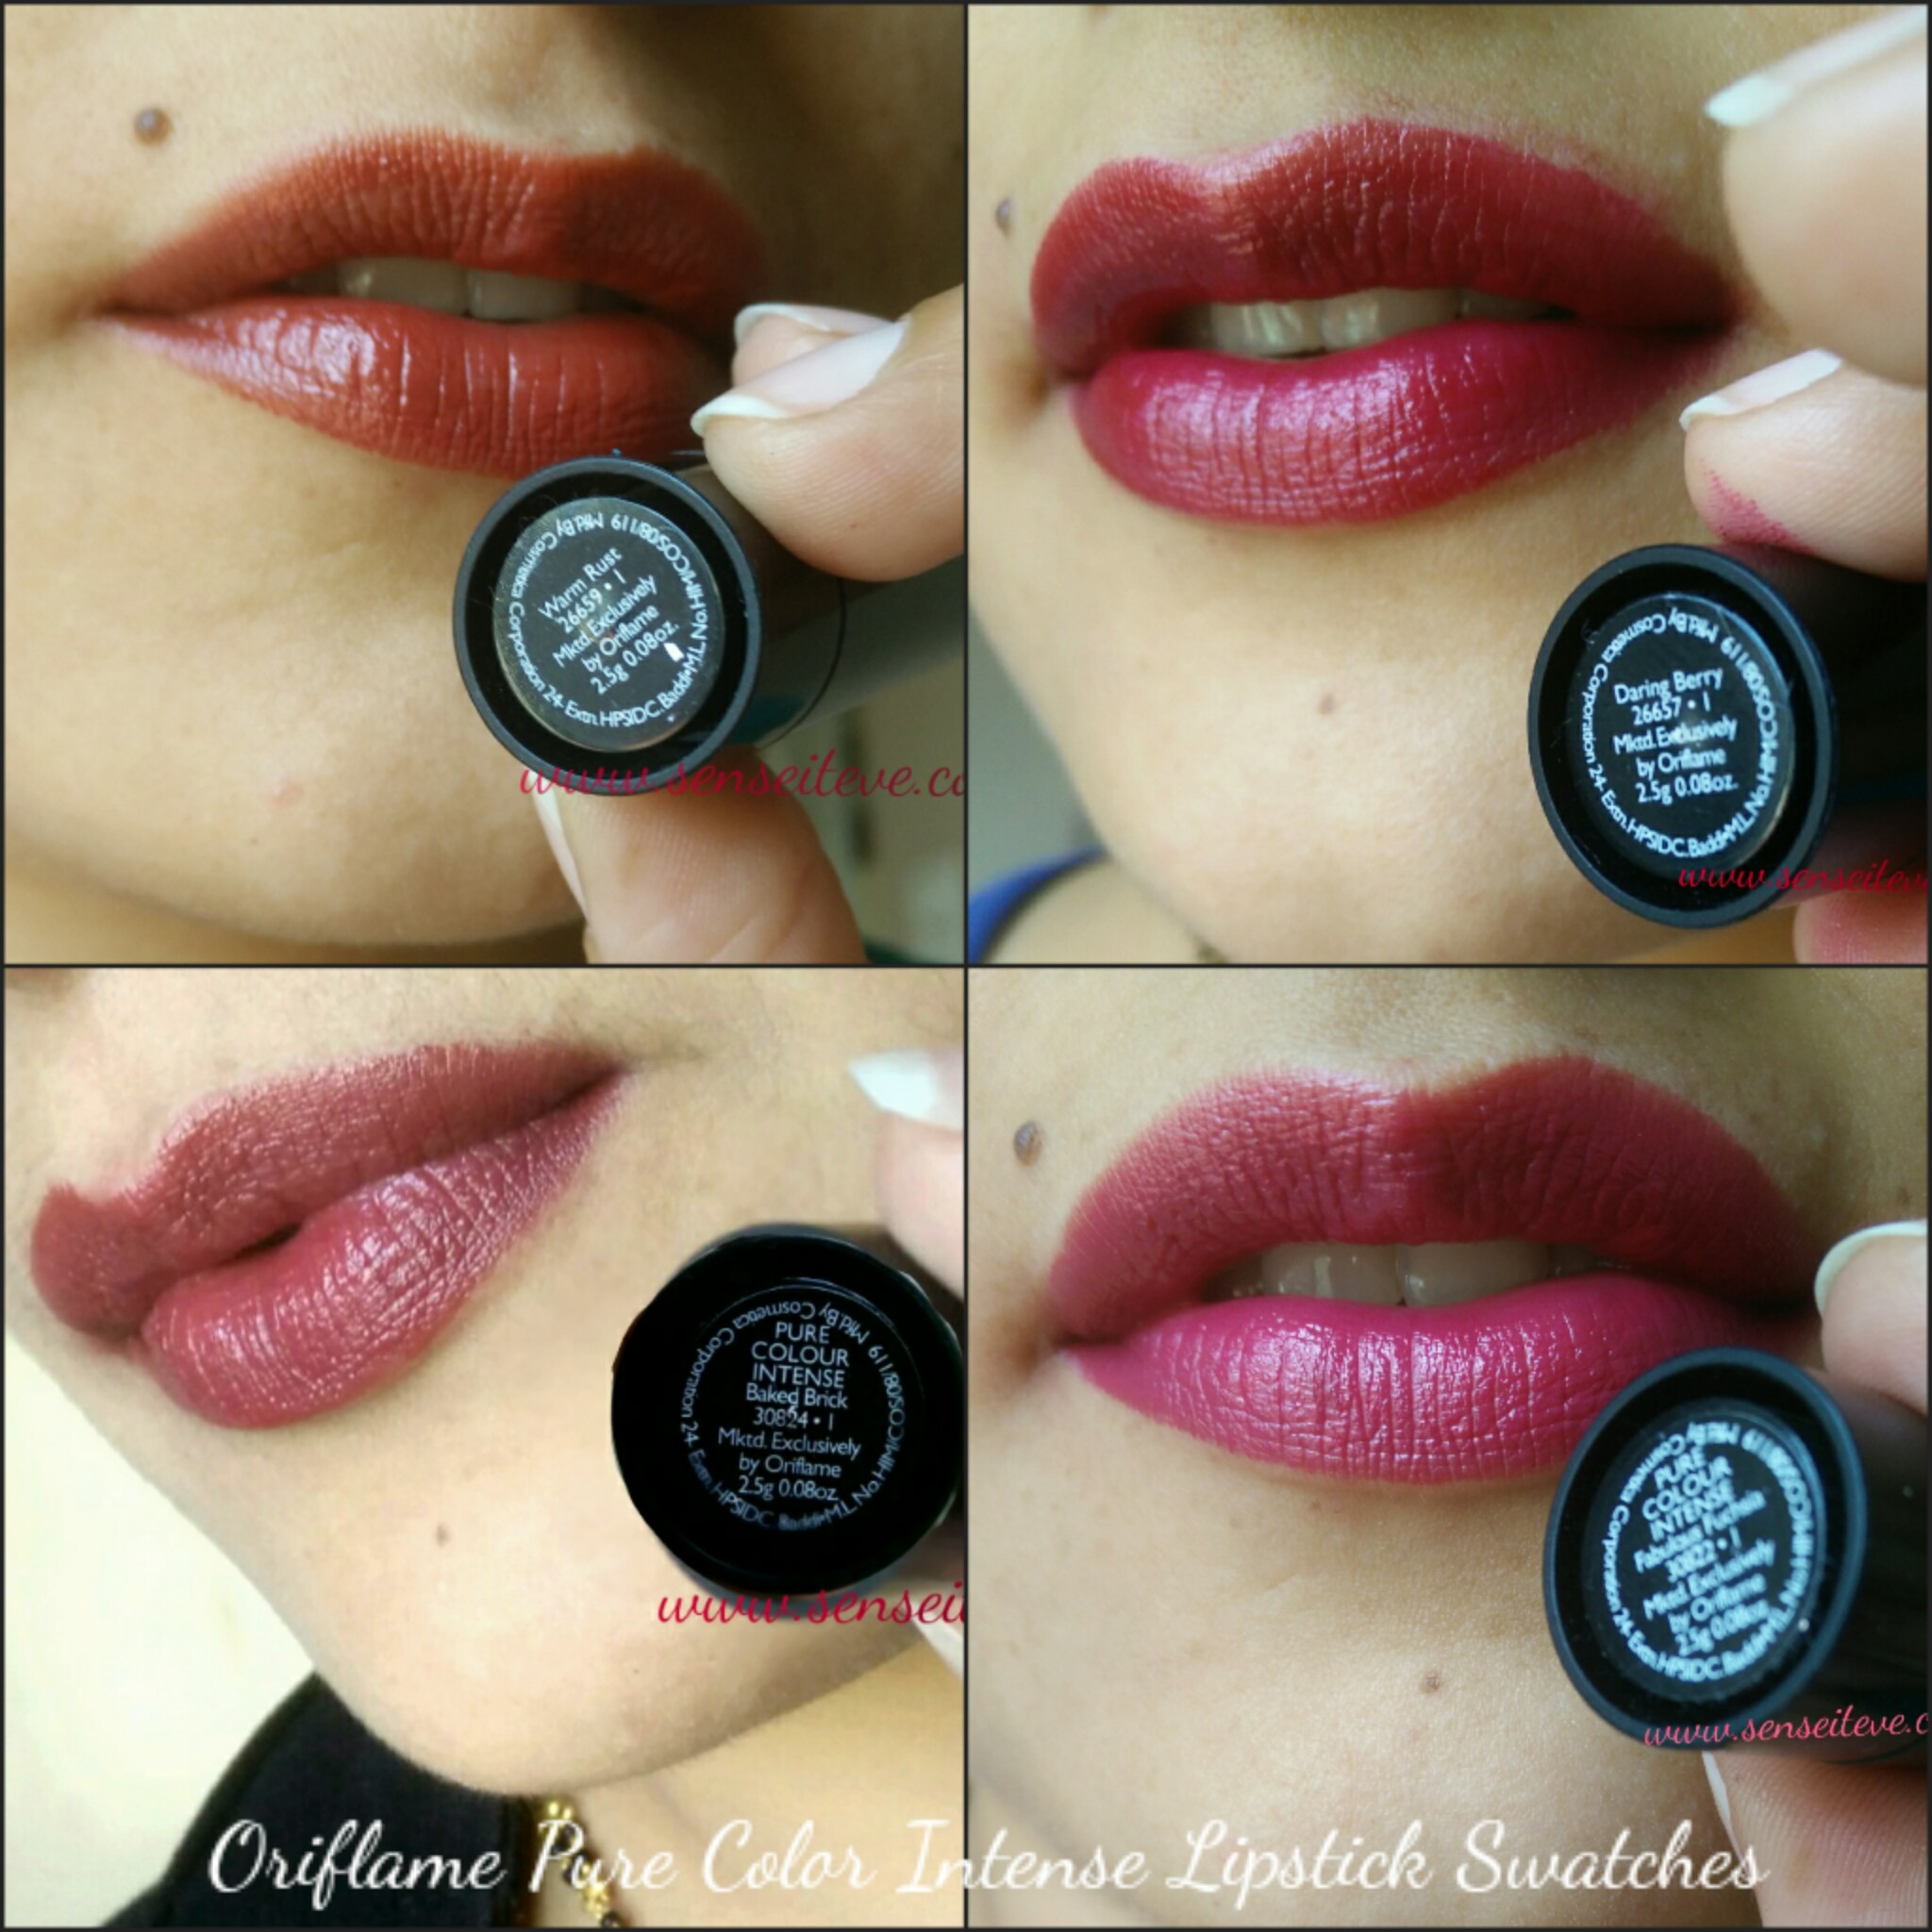 Oriflame Pure Color Intense Lipsticks Warm Rust, Daring Berry, Baked Brick, Fabulous Fuschia Swatches